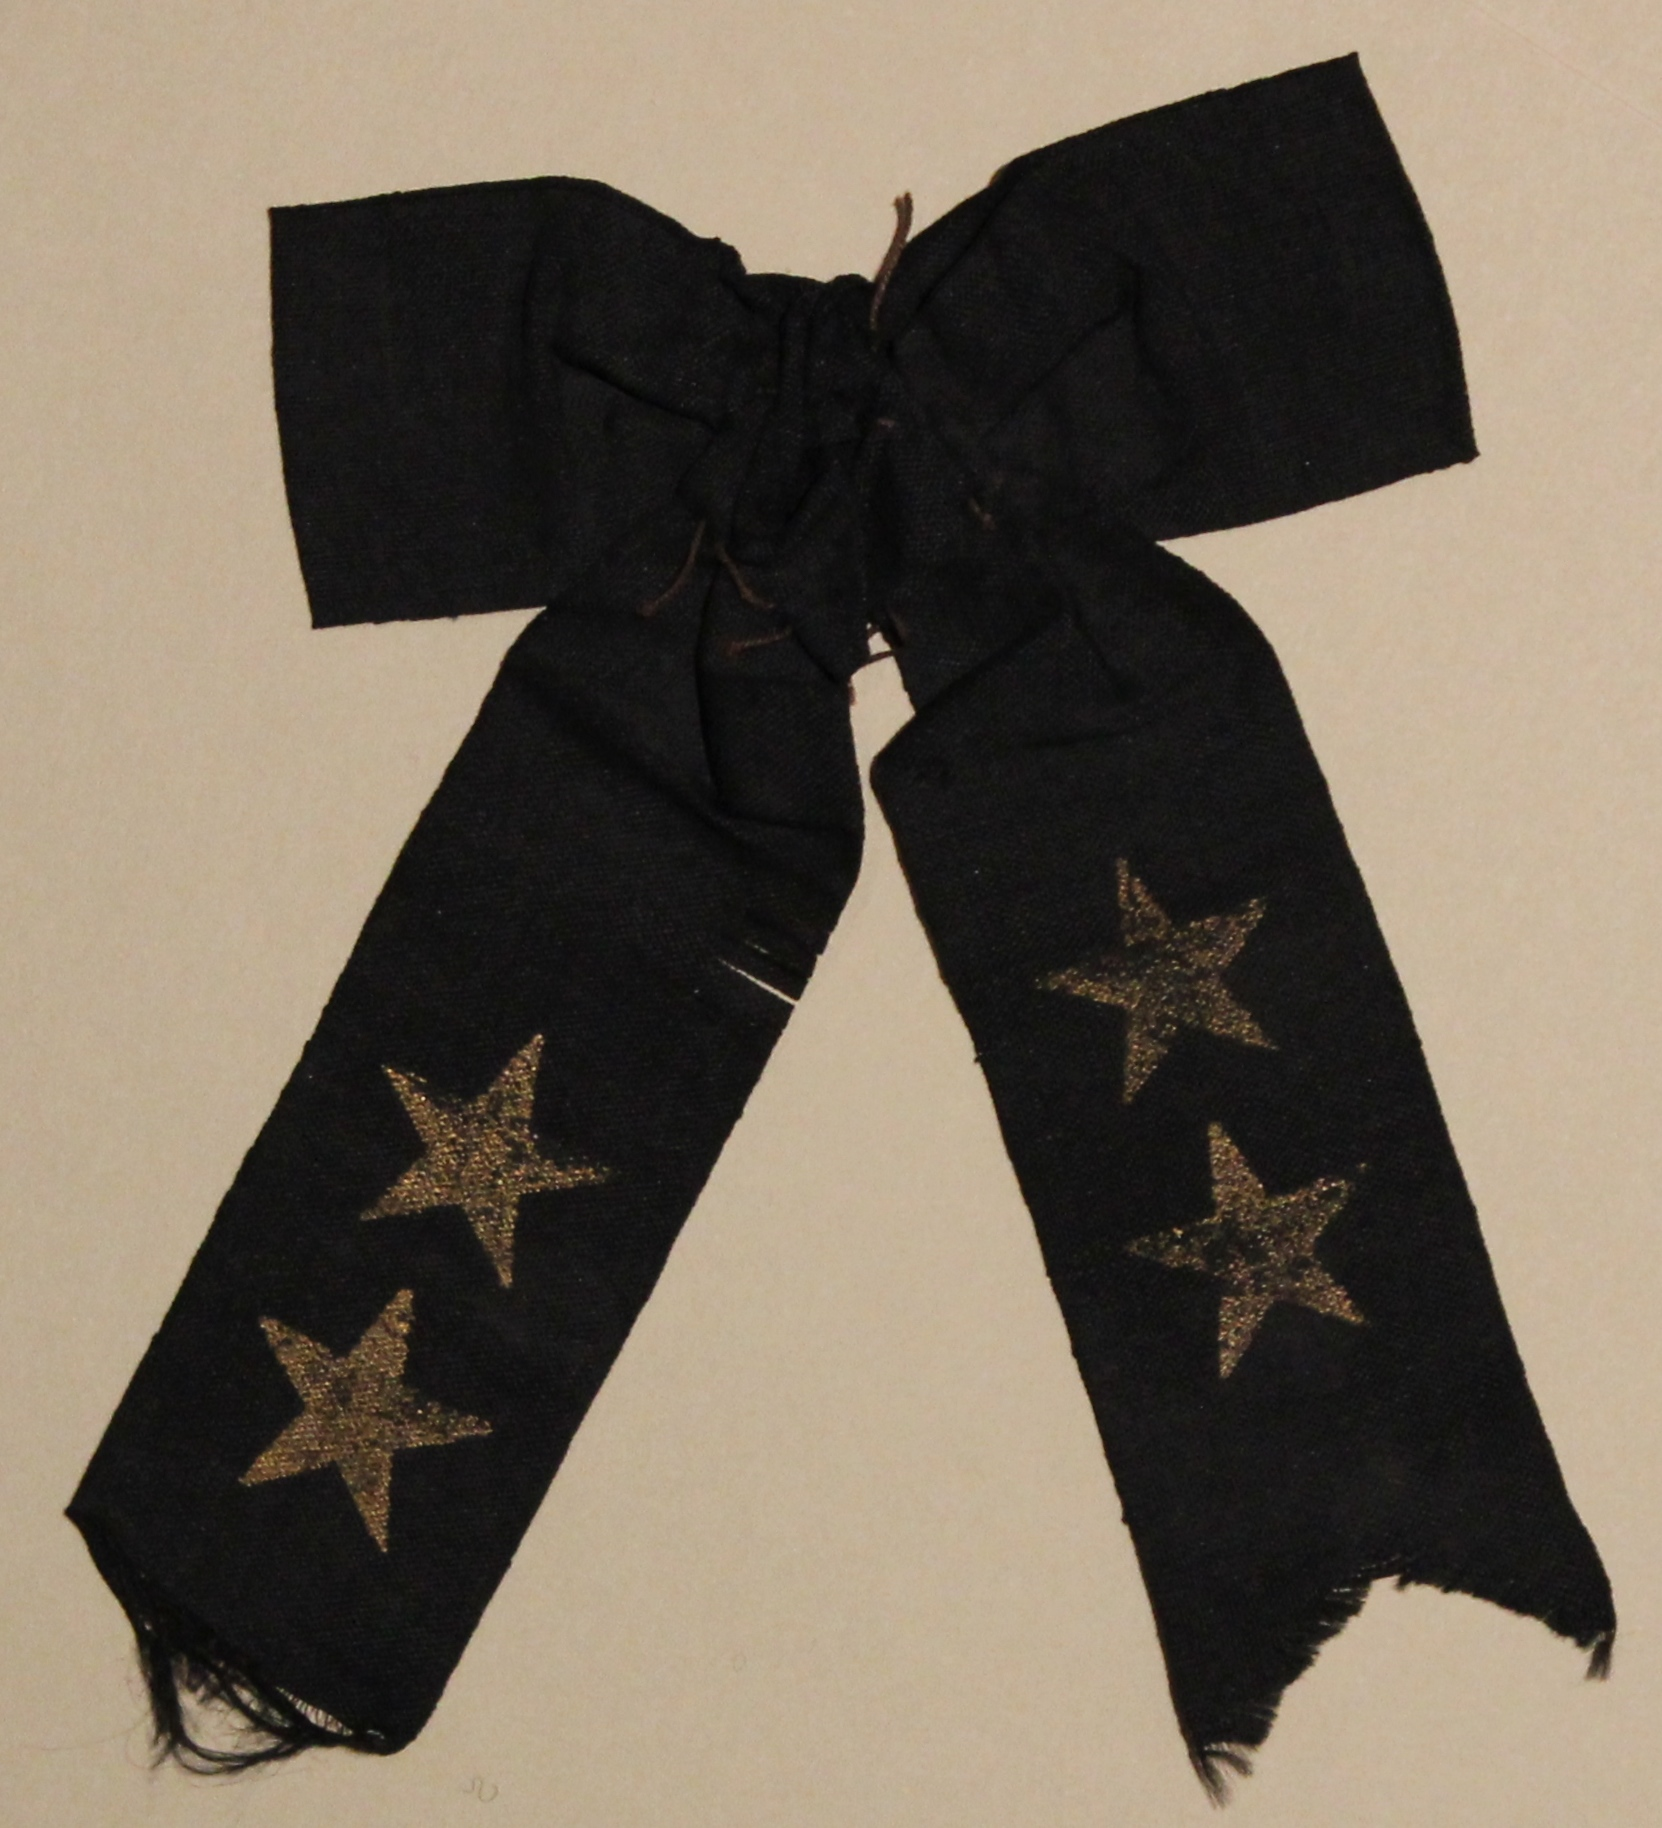 Black Mourning Bow with Gold Stars